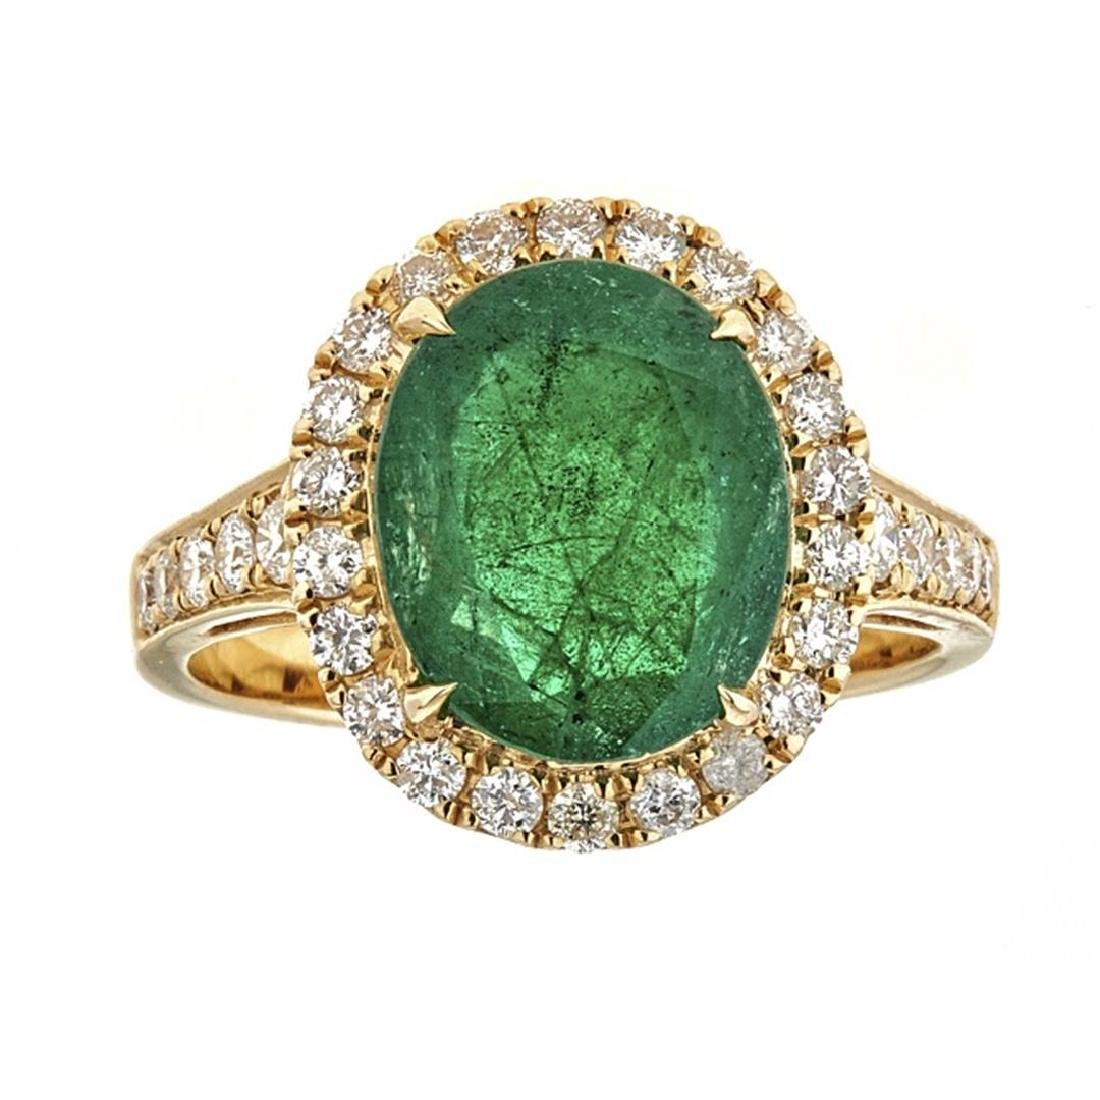 3.00 ctw Emerald and Diamond Ring - 18KT Yellow Gold